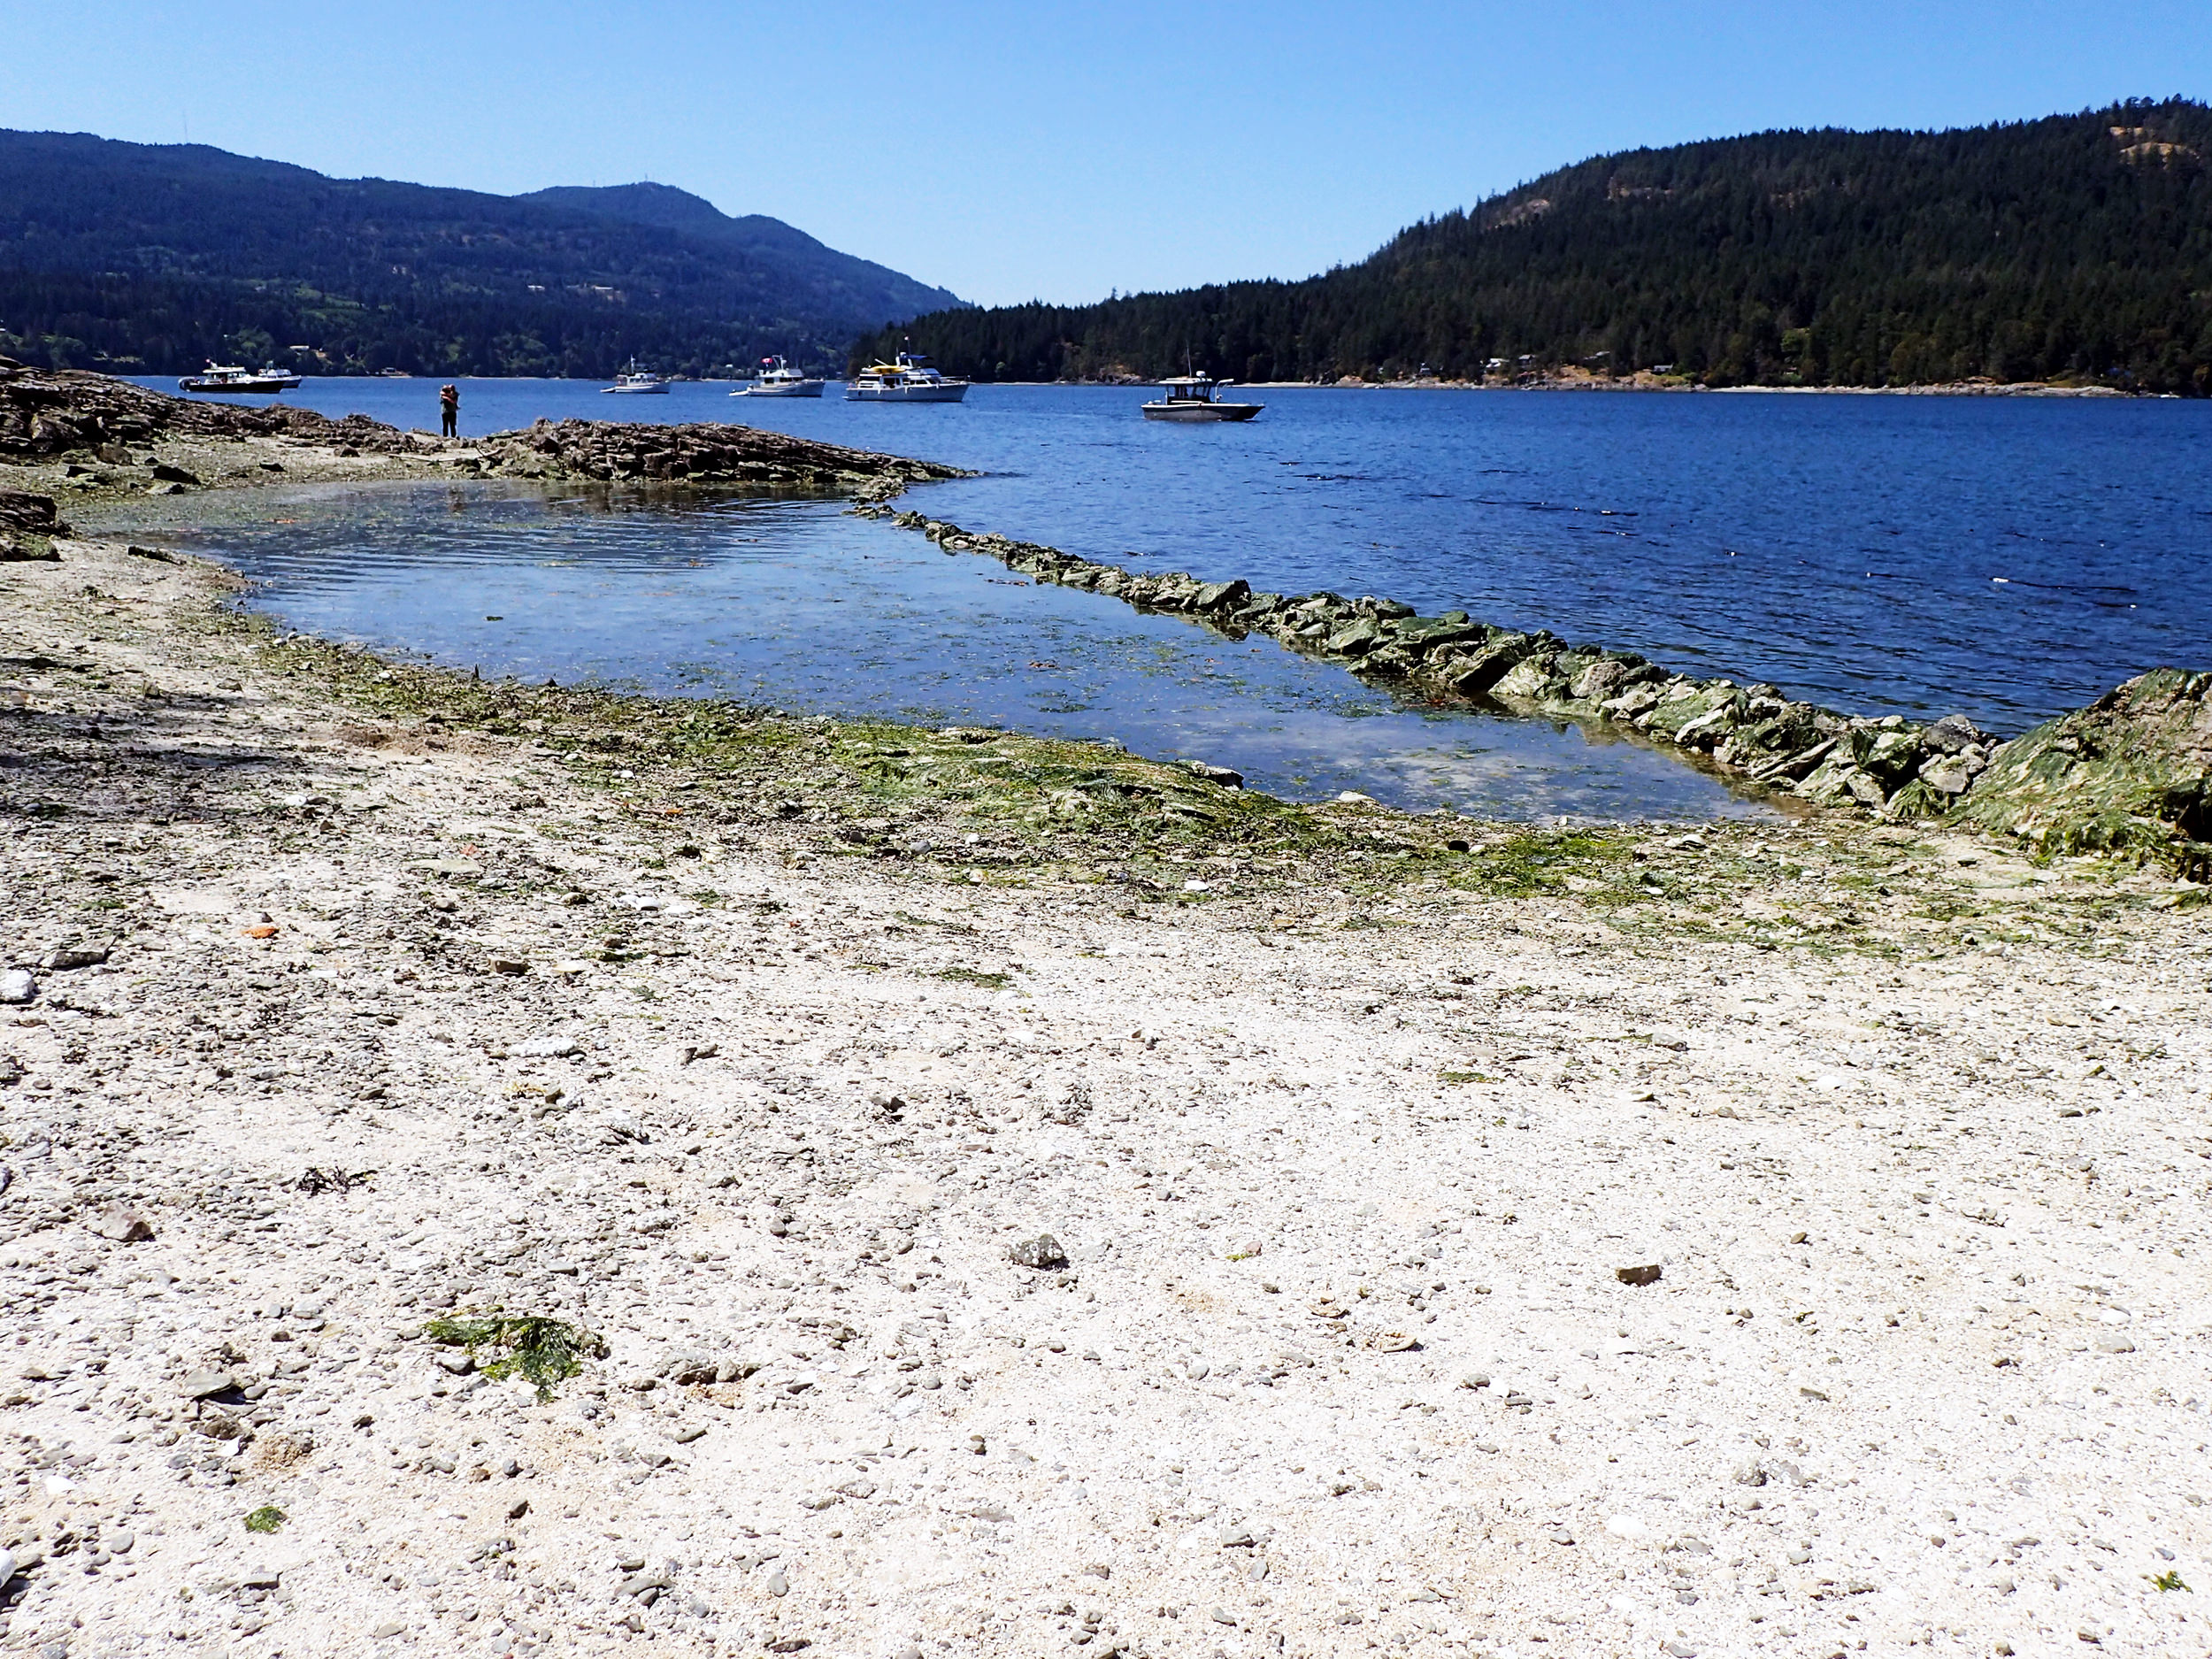 A small clam garden traps water and sediment, creating preferred habitat for clams on Russell Island, B.C. Photo: Courtney Greiner